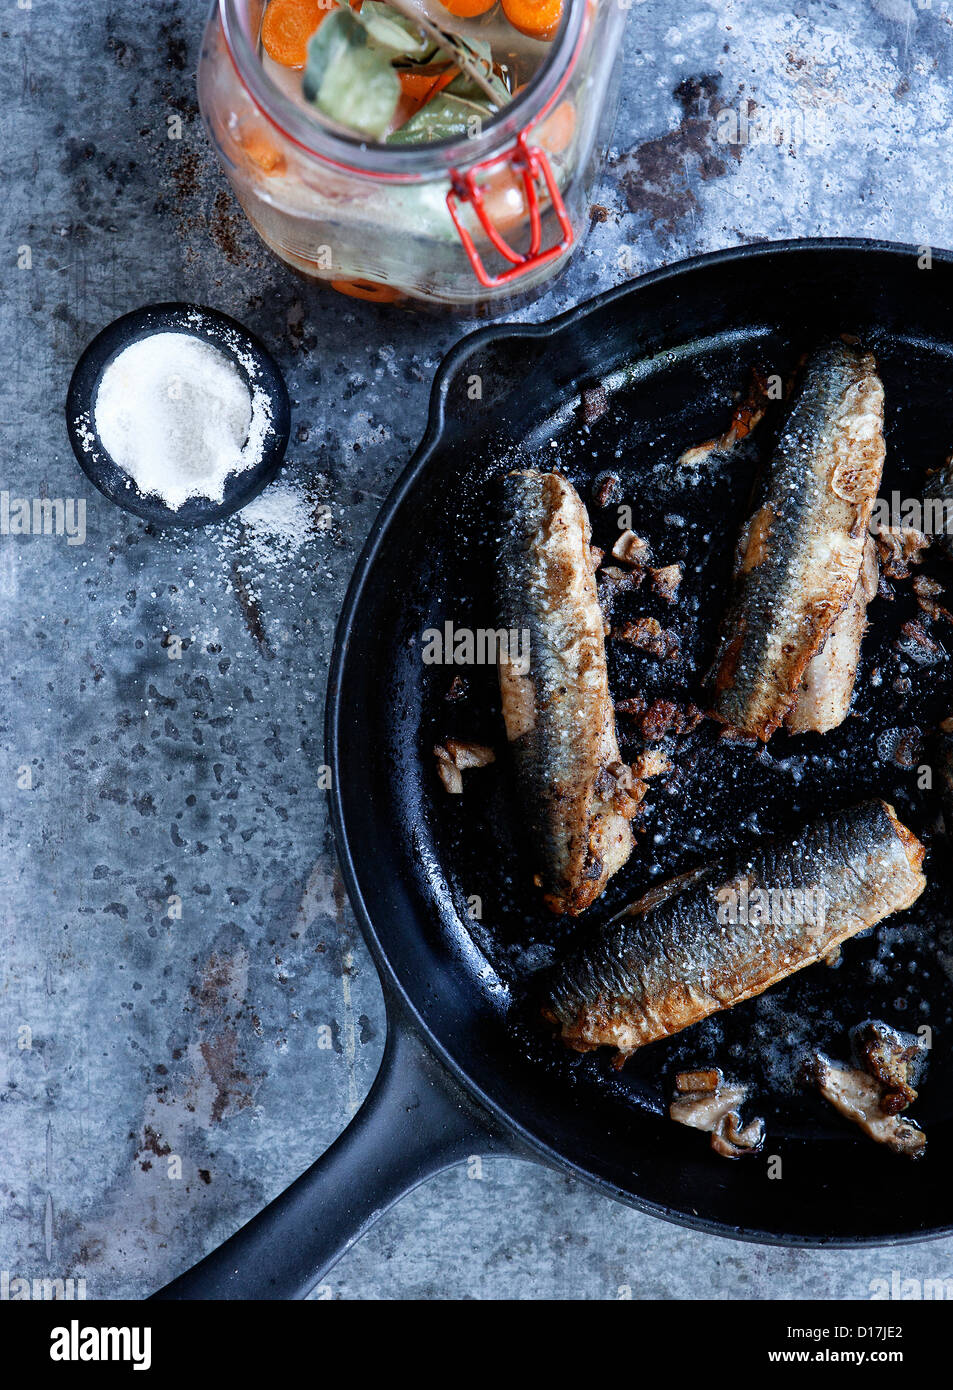 Casserole de poisson frit Photo Stock